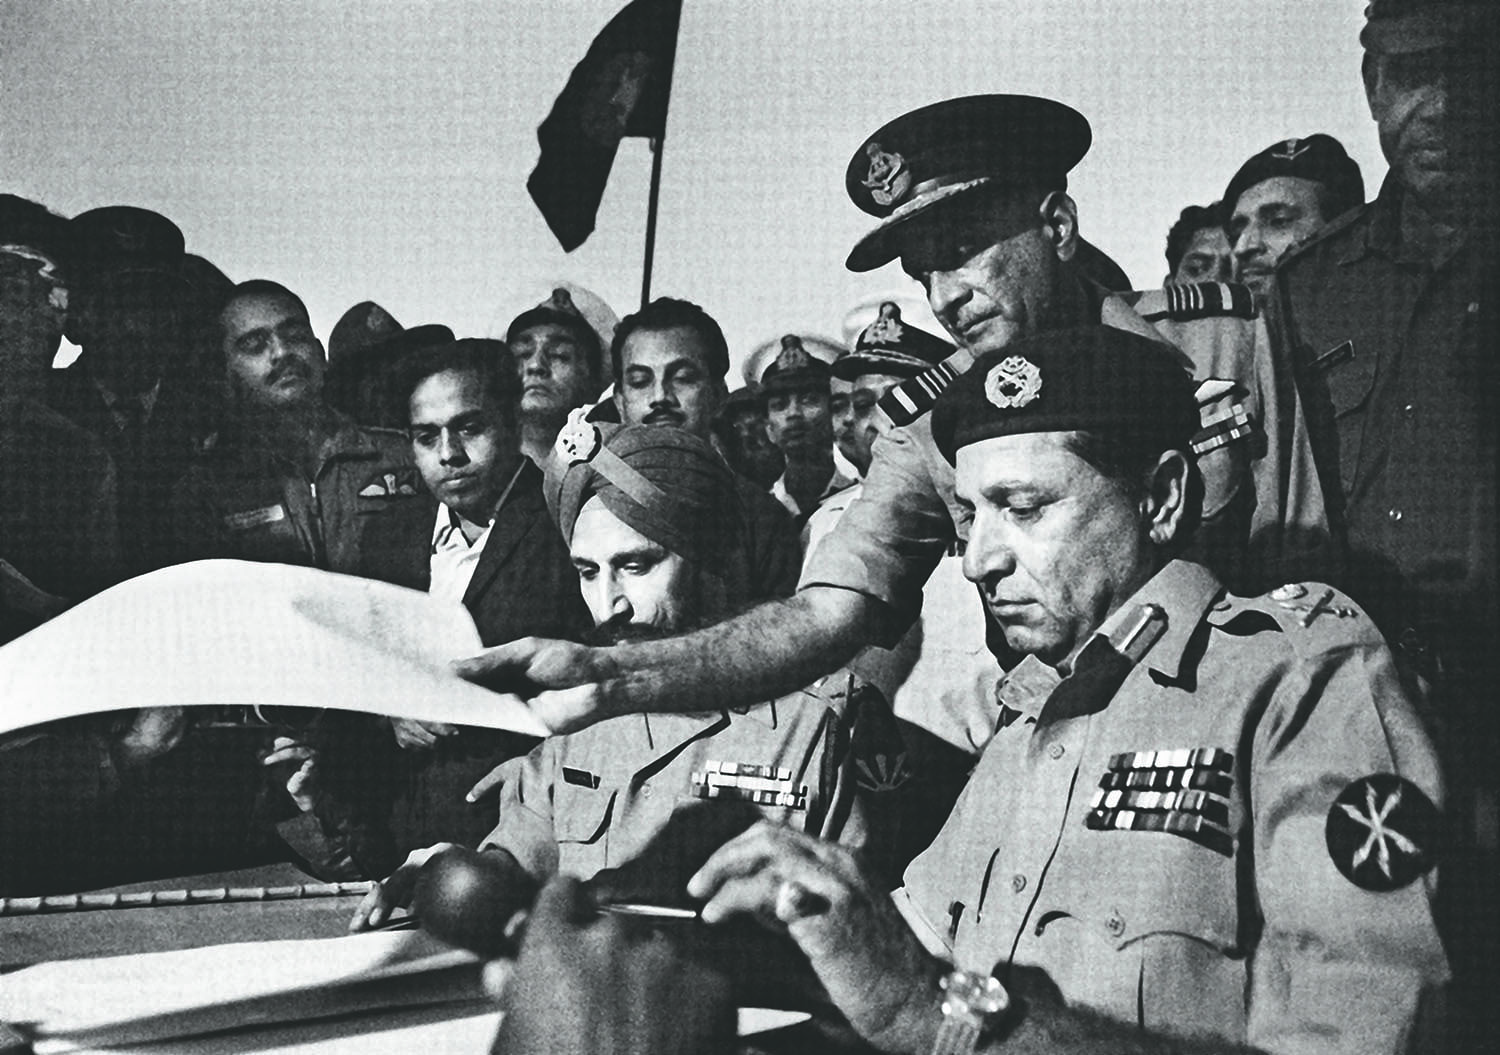 Lieutenant General Amir Abdullah Khan 'Tiger' Niazi (right), Head of the Eastern Command, signing the Treaty of Surrender on December 16, 1971. On the left is Lieutenant General Jagjit Singh Aurora, Joint Commander of the Bangladesh-India Allied Forces. | Photo: Raghu Rai